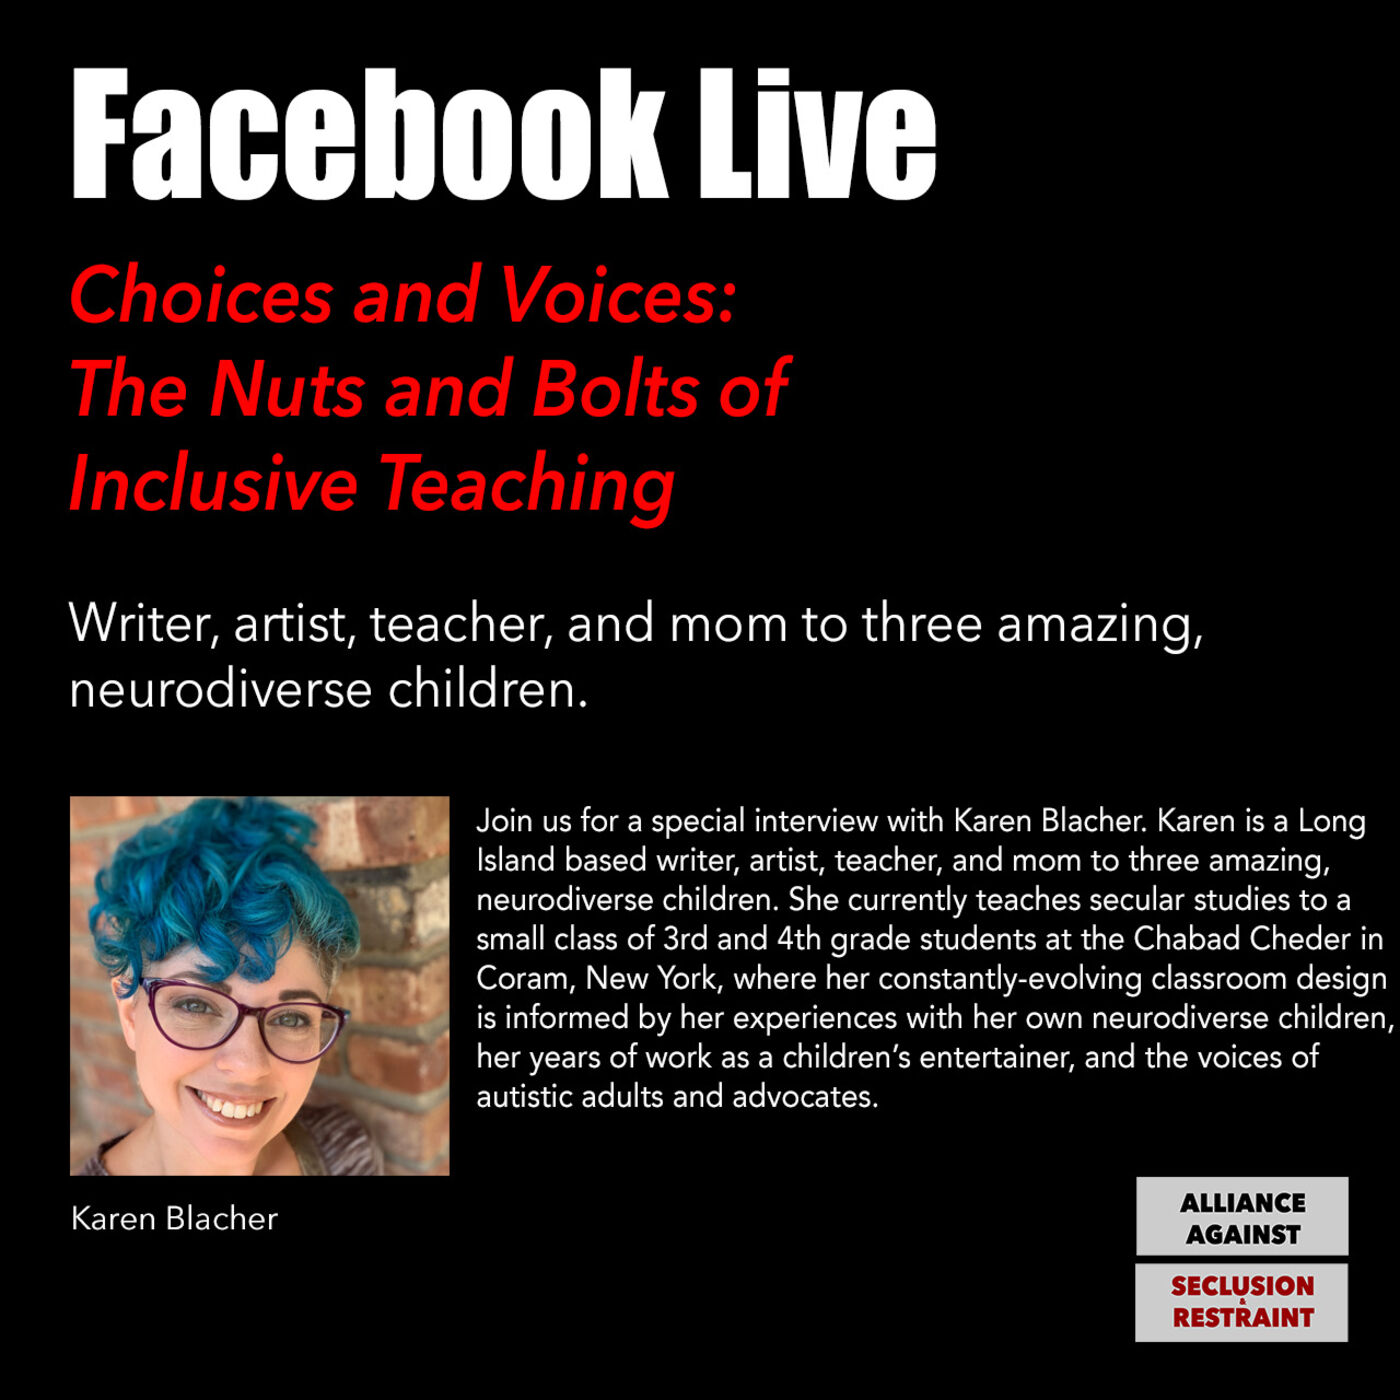 Choices and Voices: The Nuts and Bolts of Inclusive Teaching